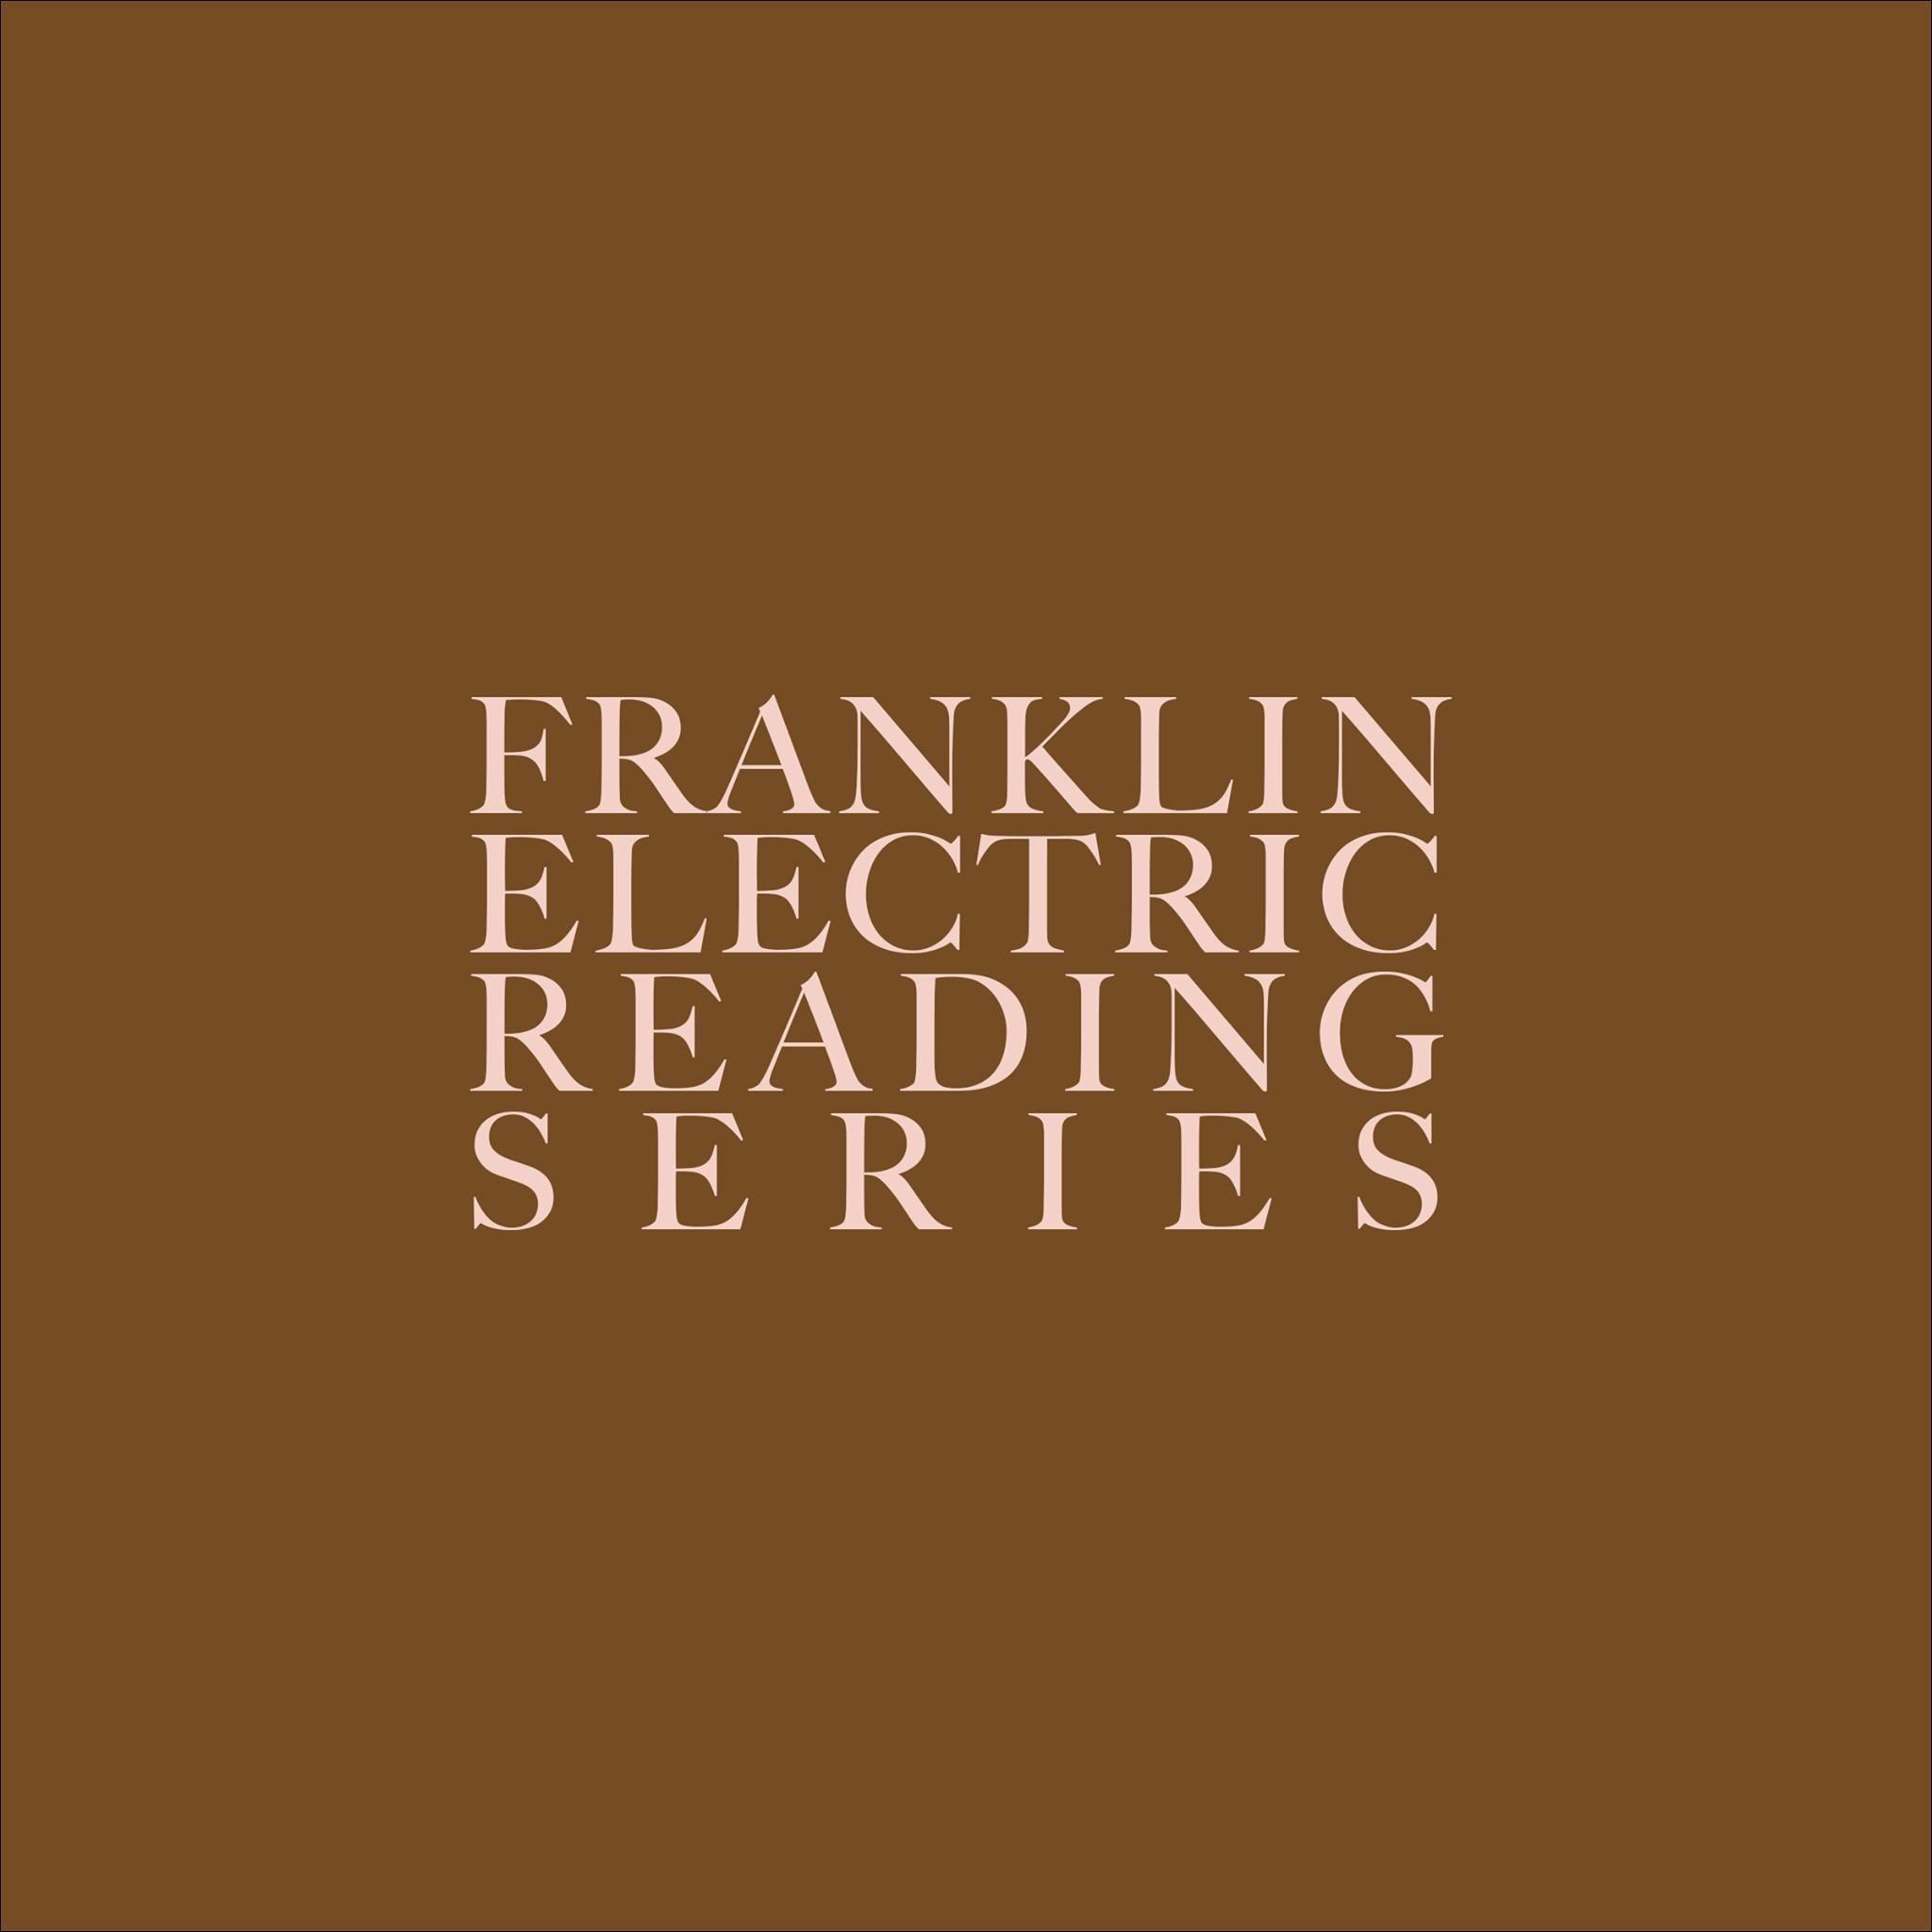 Franklin Electric Reading Series